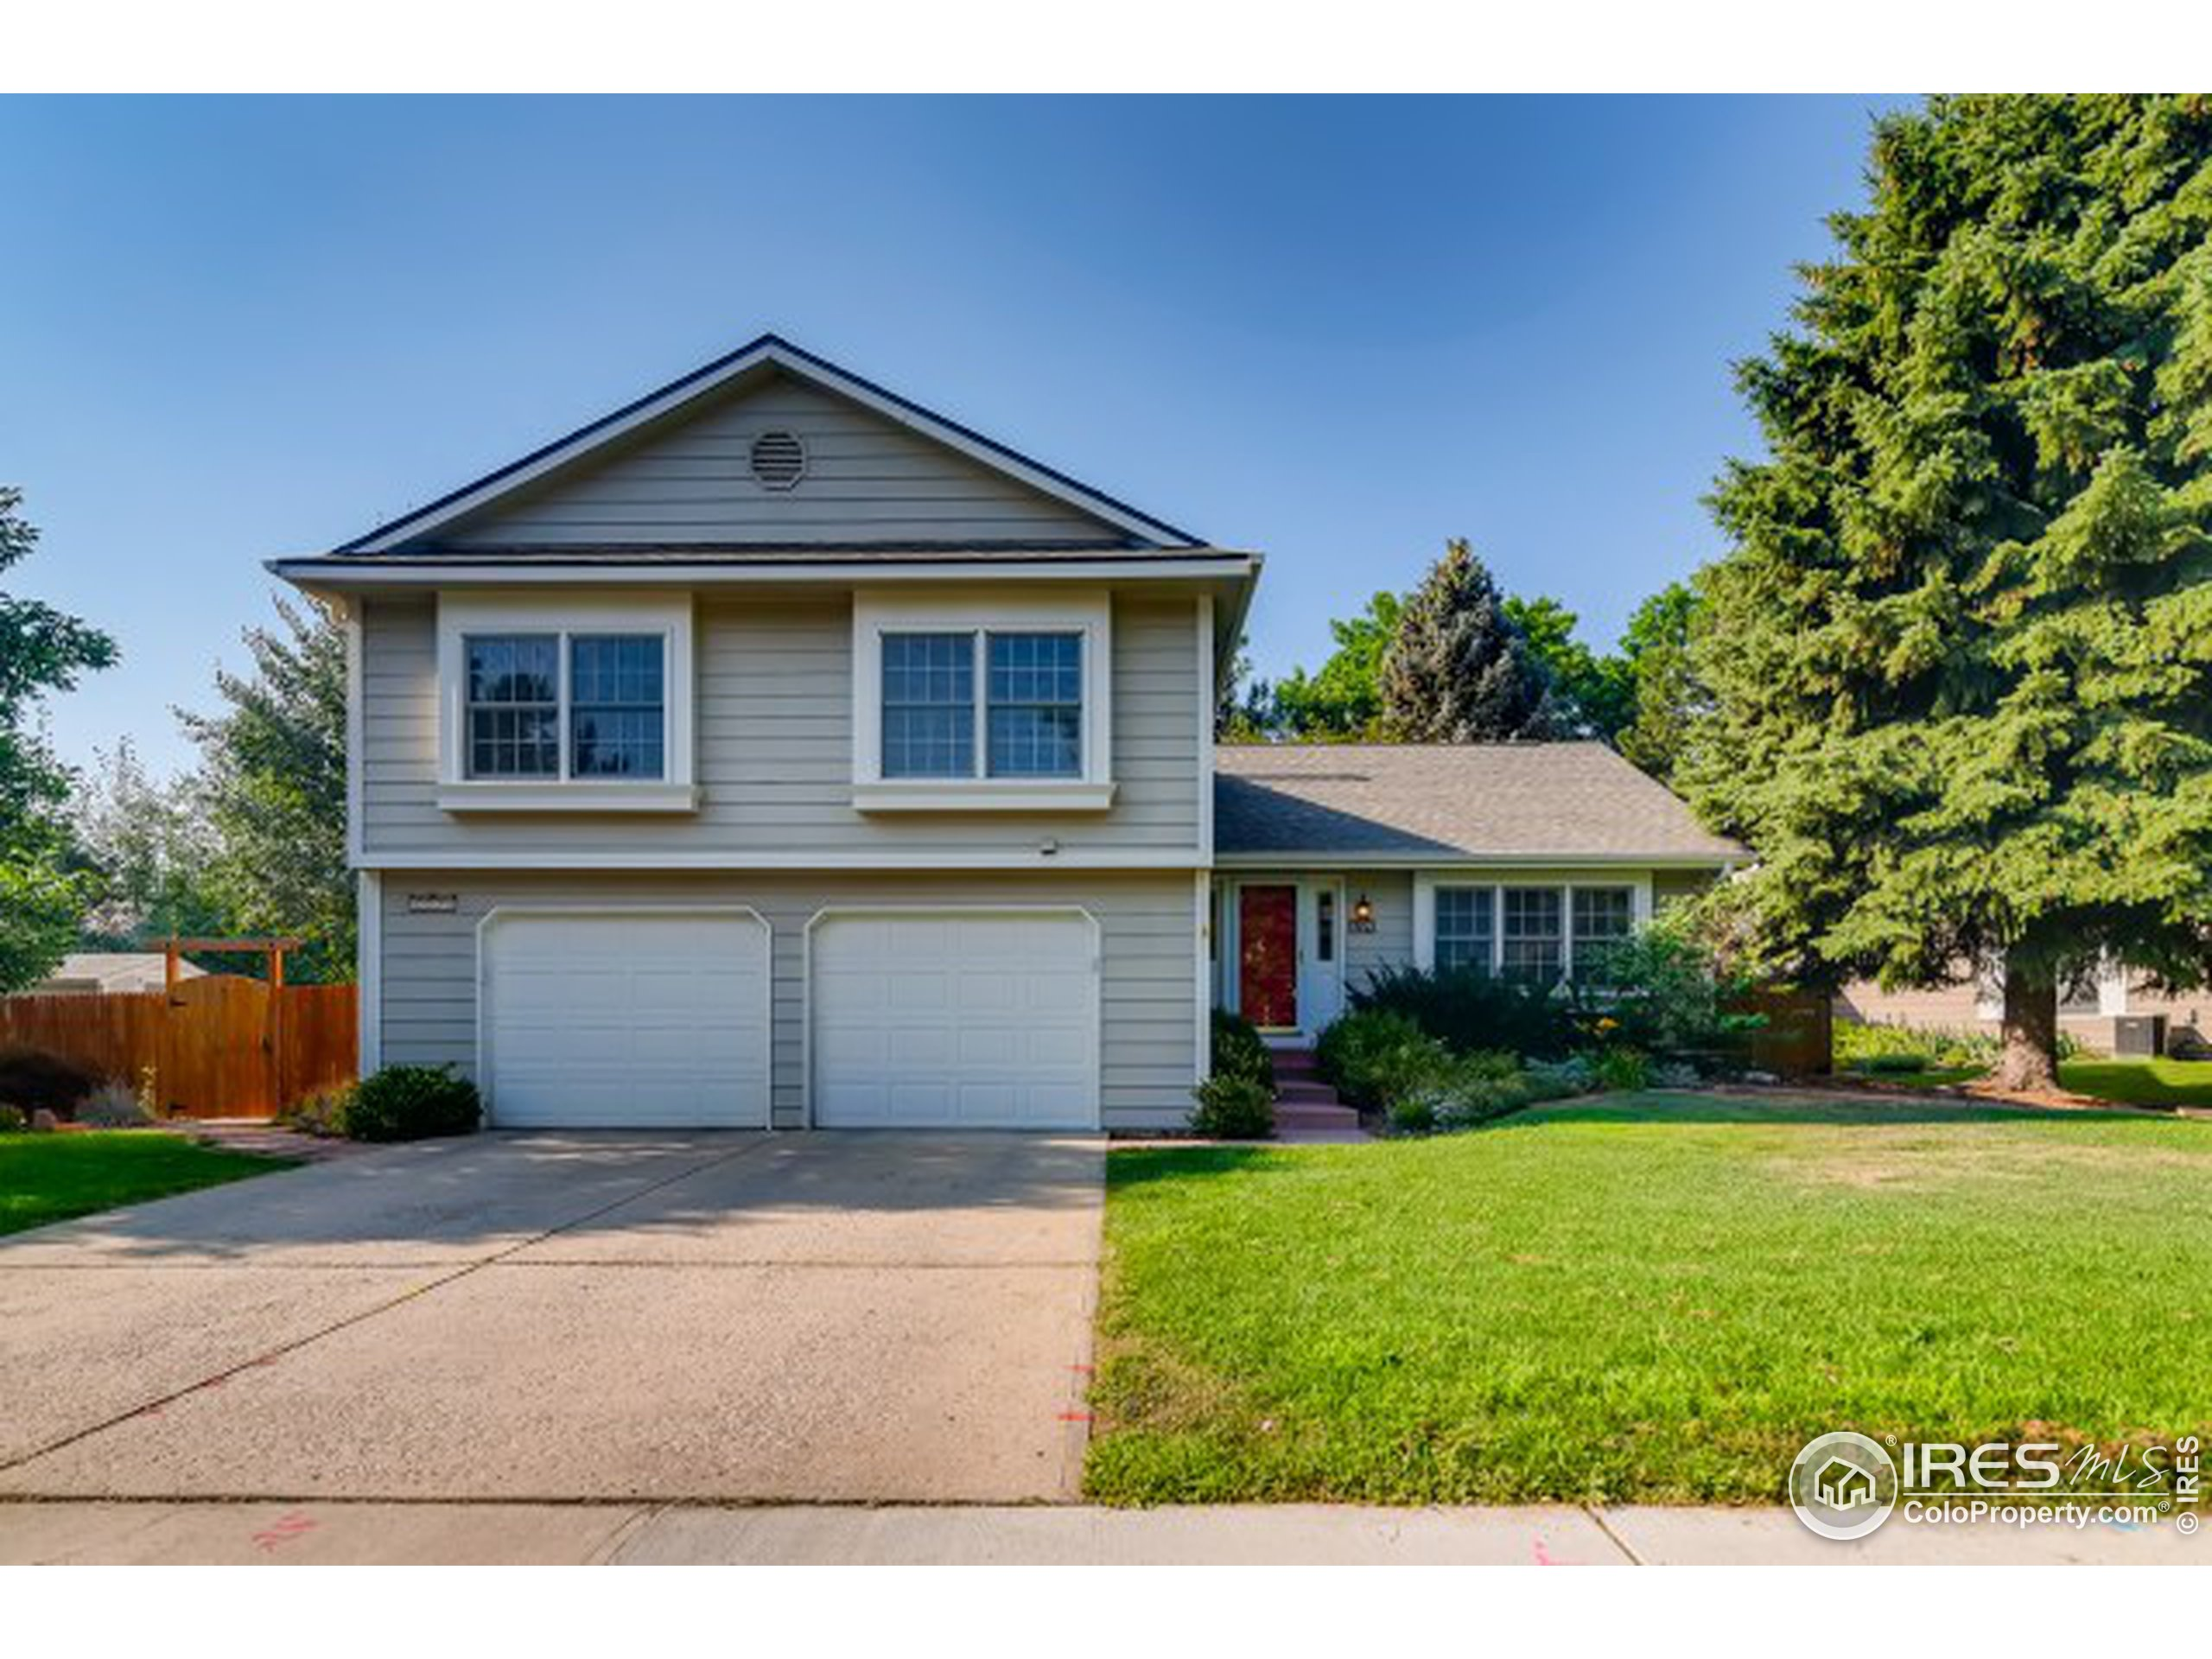 1229 Mansfield Dr, Fort Collins, CO 80525